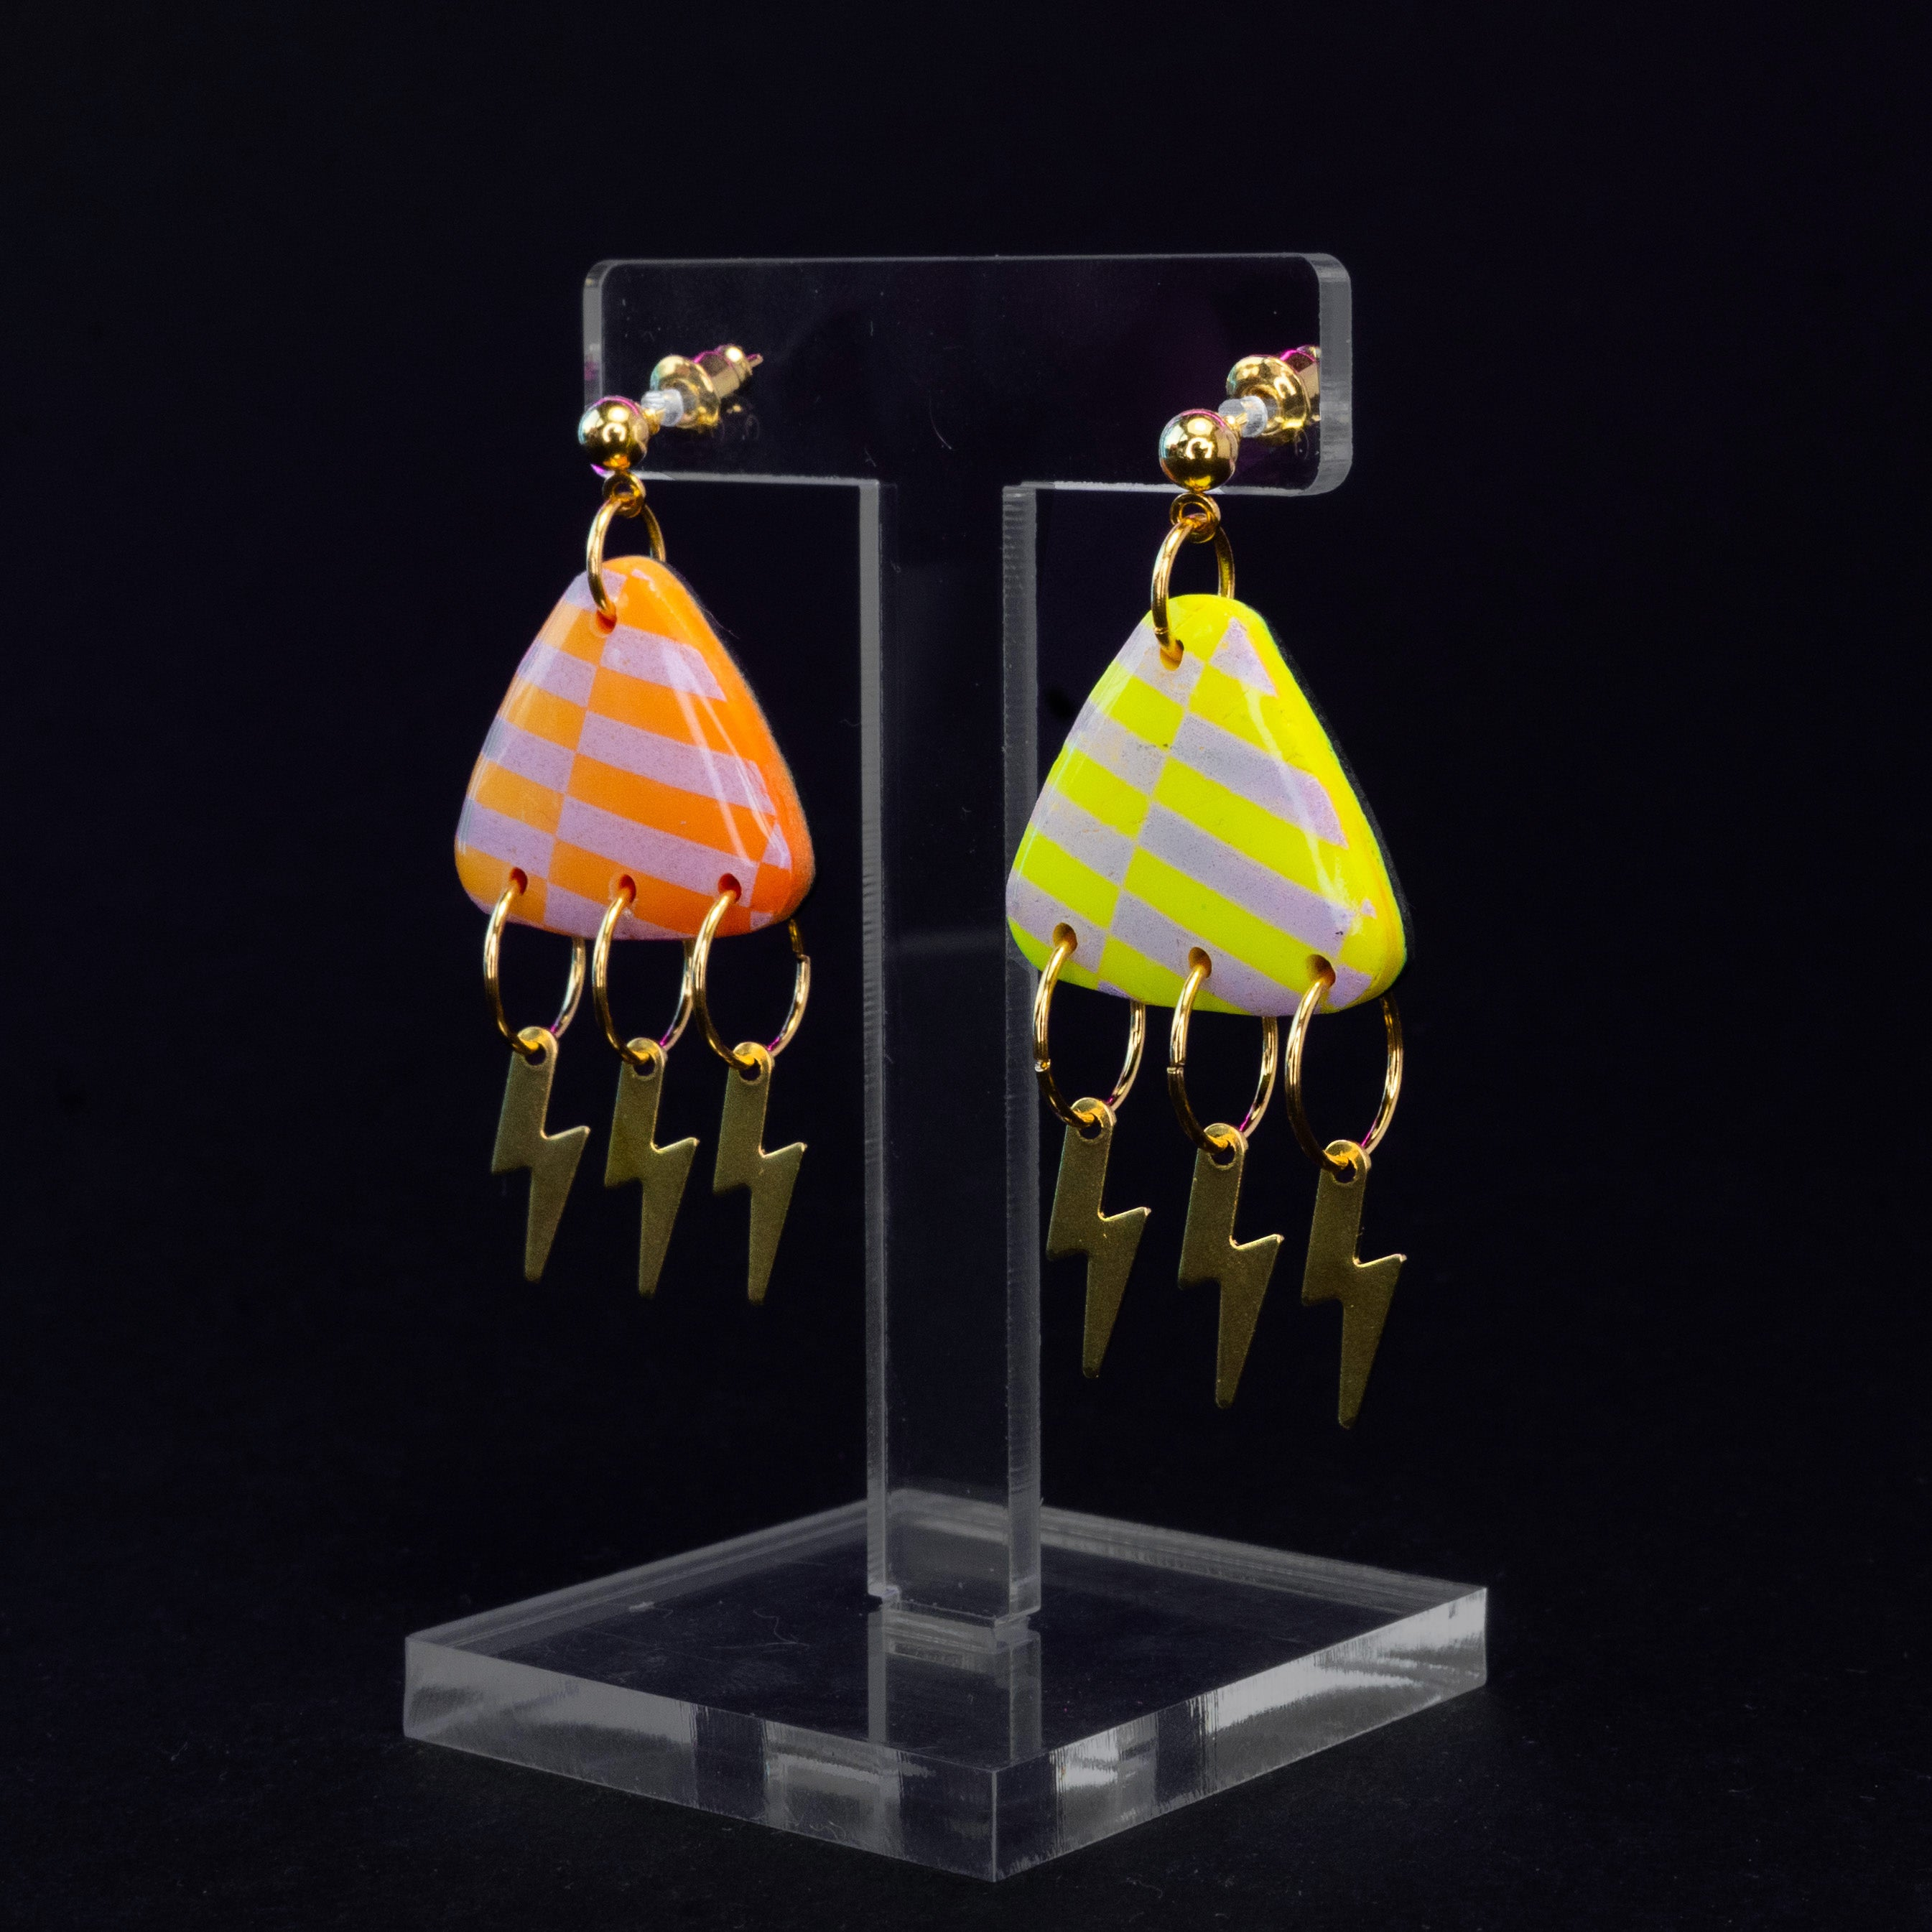 Medium orange triangle lightning bolt dangles